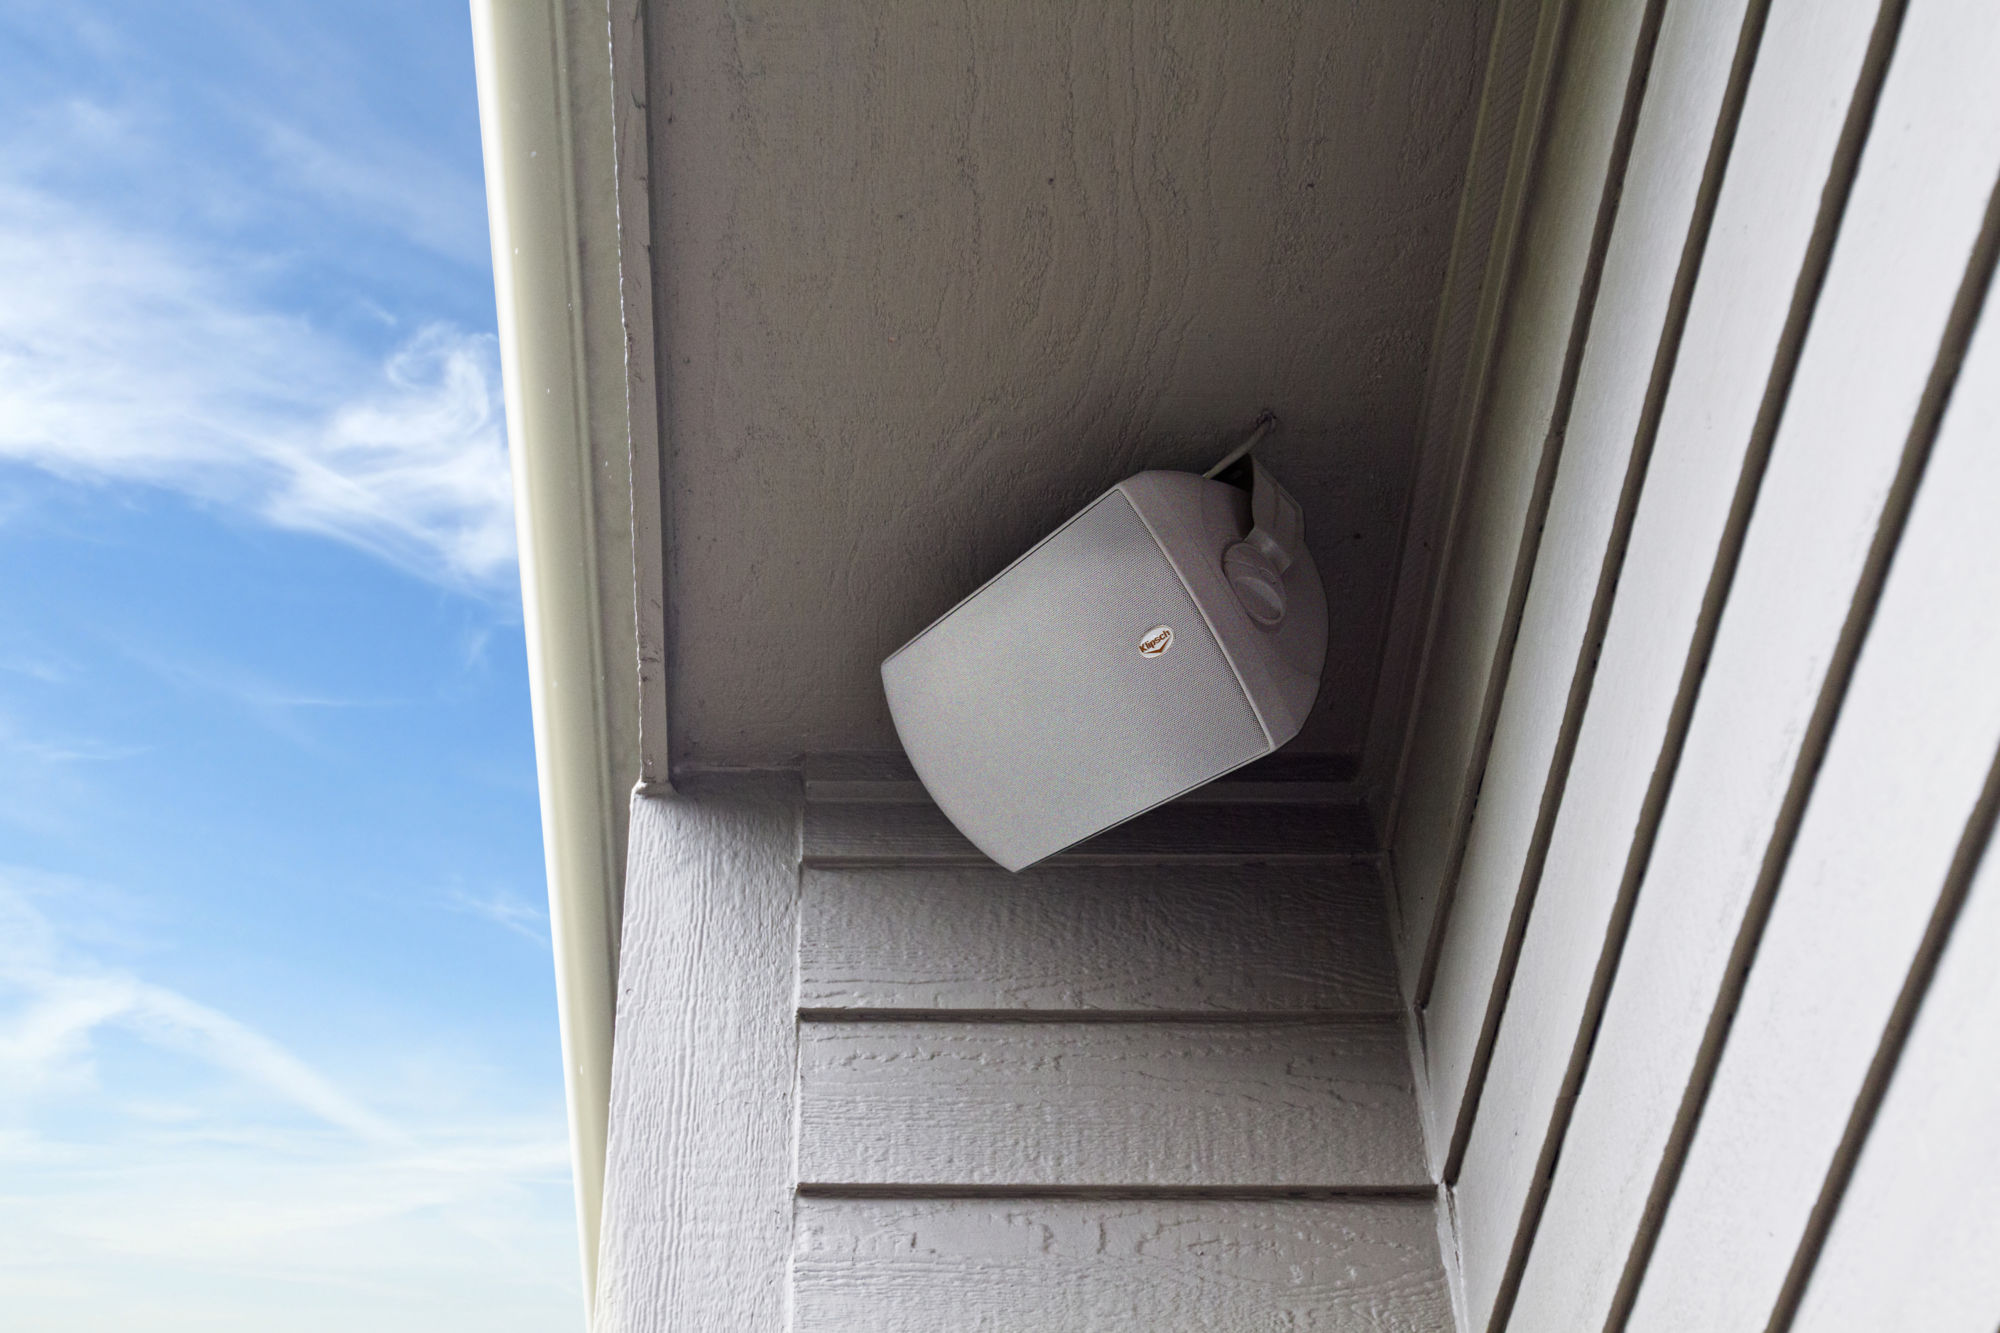 AW-650 Outdoor Speaker mounted to a house